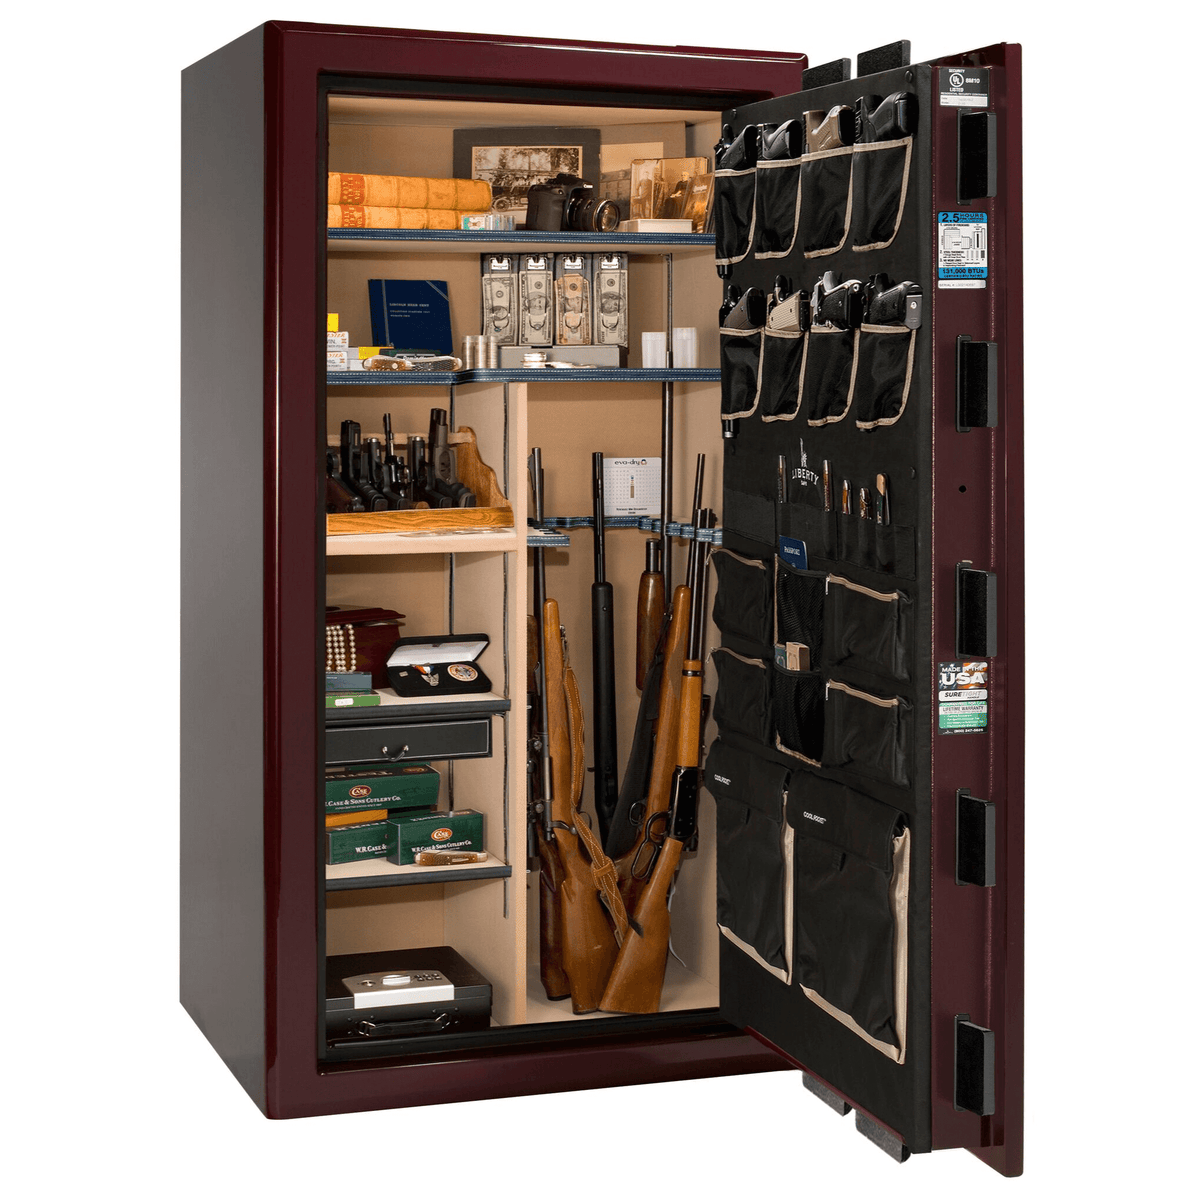 "Presidential Series | Level 8 Security | 2.5 Hours Fire Protection | Burgundy Marble | Electronic Lock | 50 | Dimensions: 72.5""(H) x 42""(W) x 32""(D)"